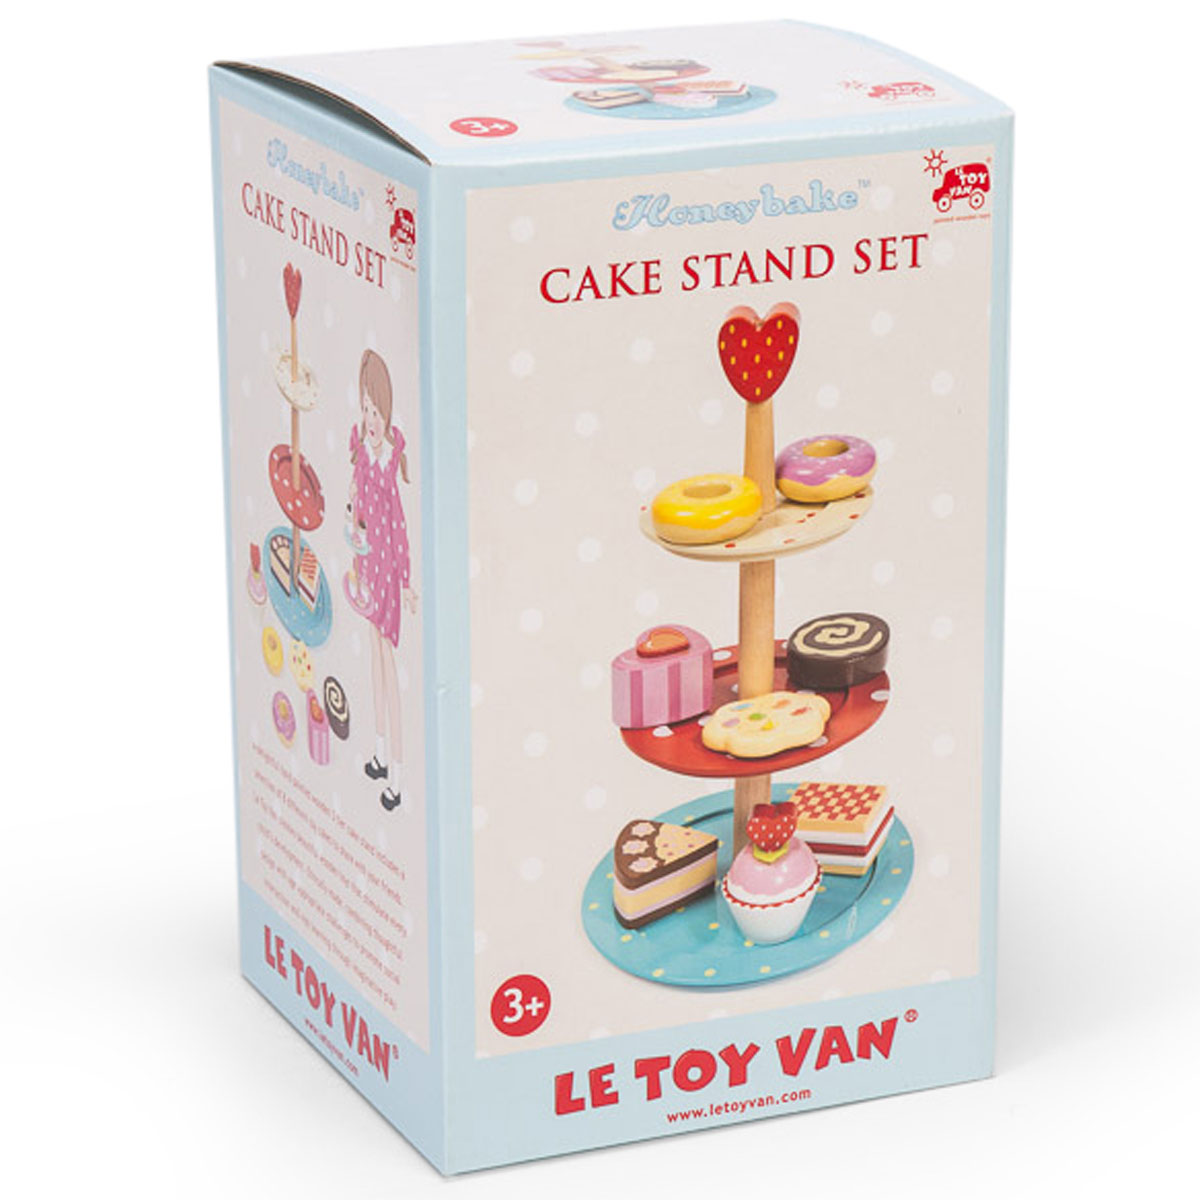 Le toy van cake stand set tv283 pirum for Kitchen set cake